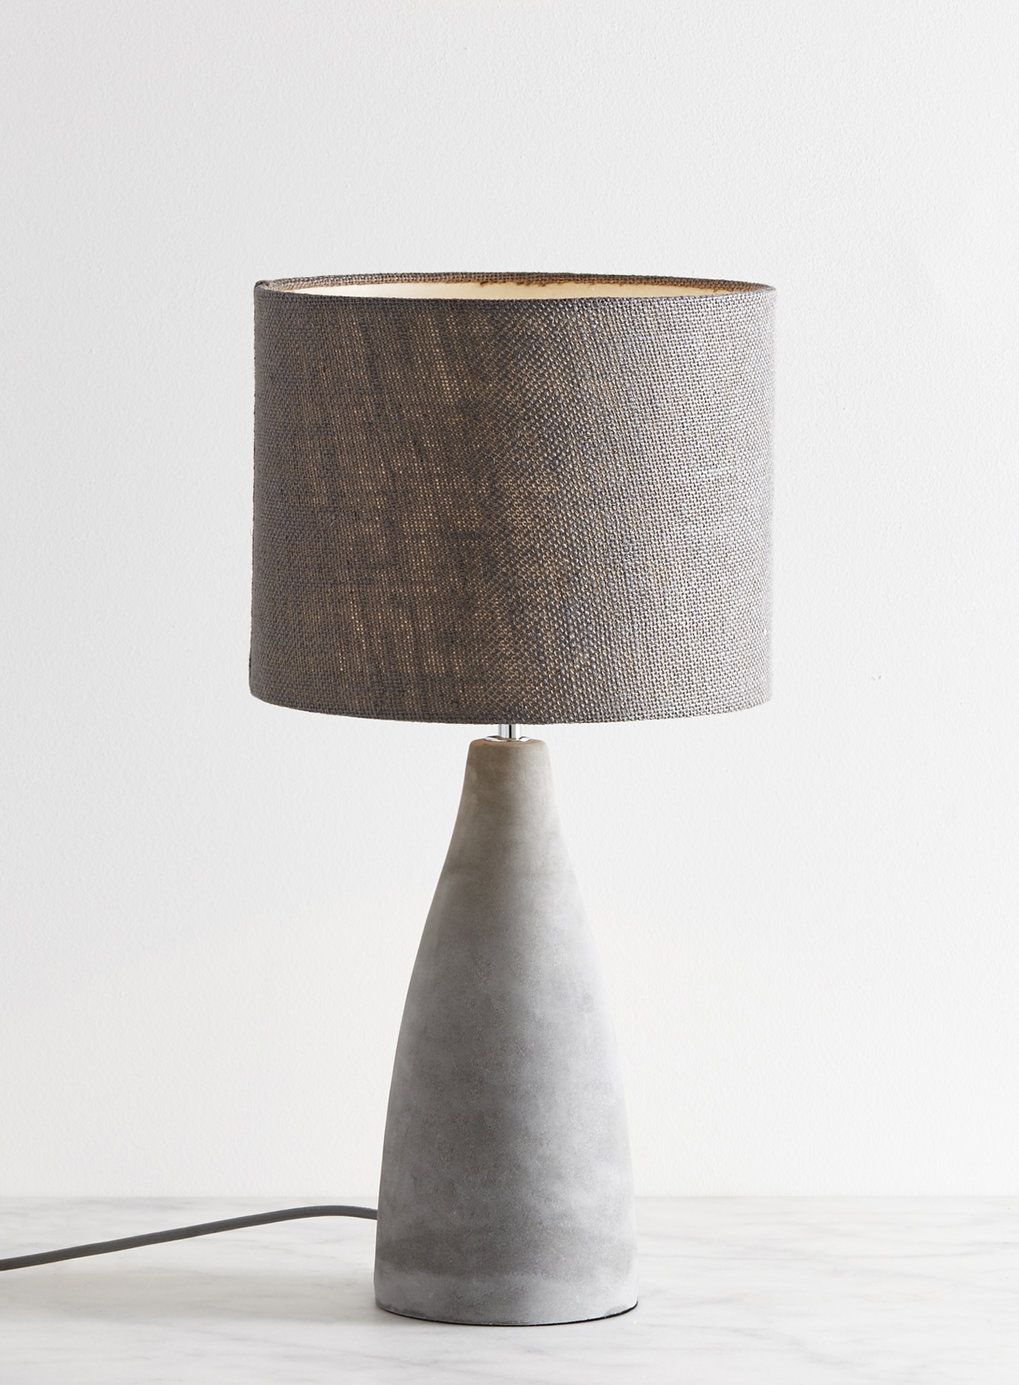 Fraser Grey Table Lamp Bhs Grey Table Lamps Table Lamp